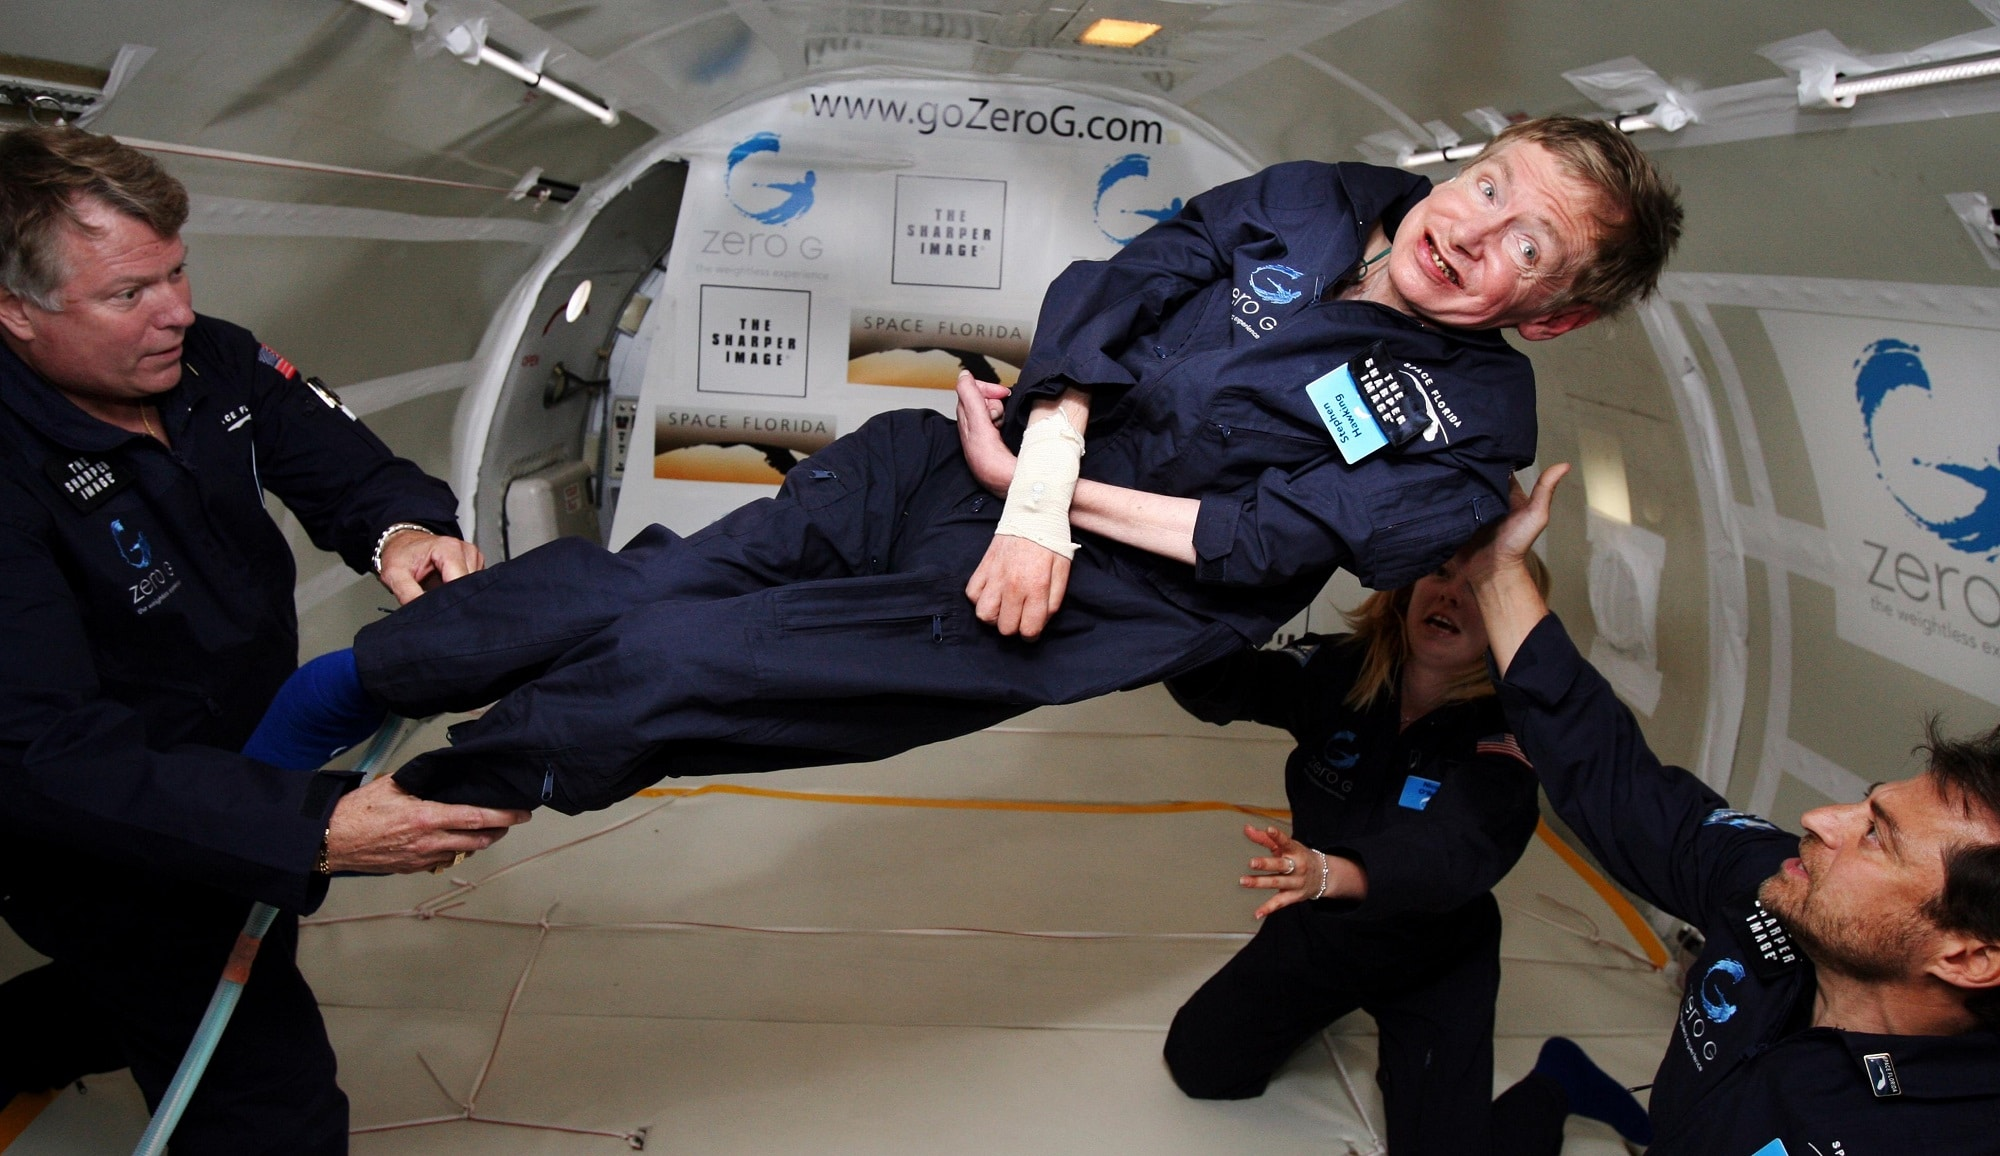 Stephen Hawking in zero g